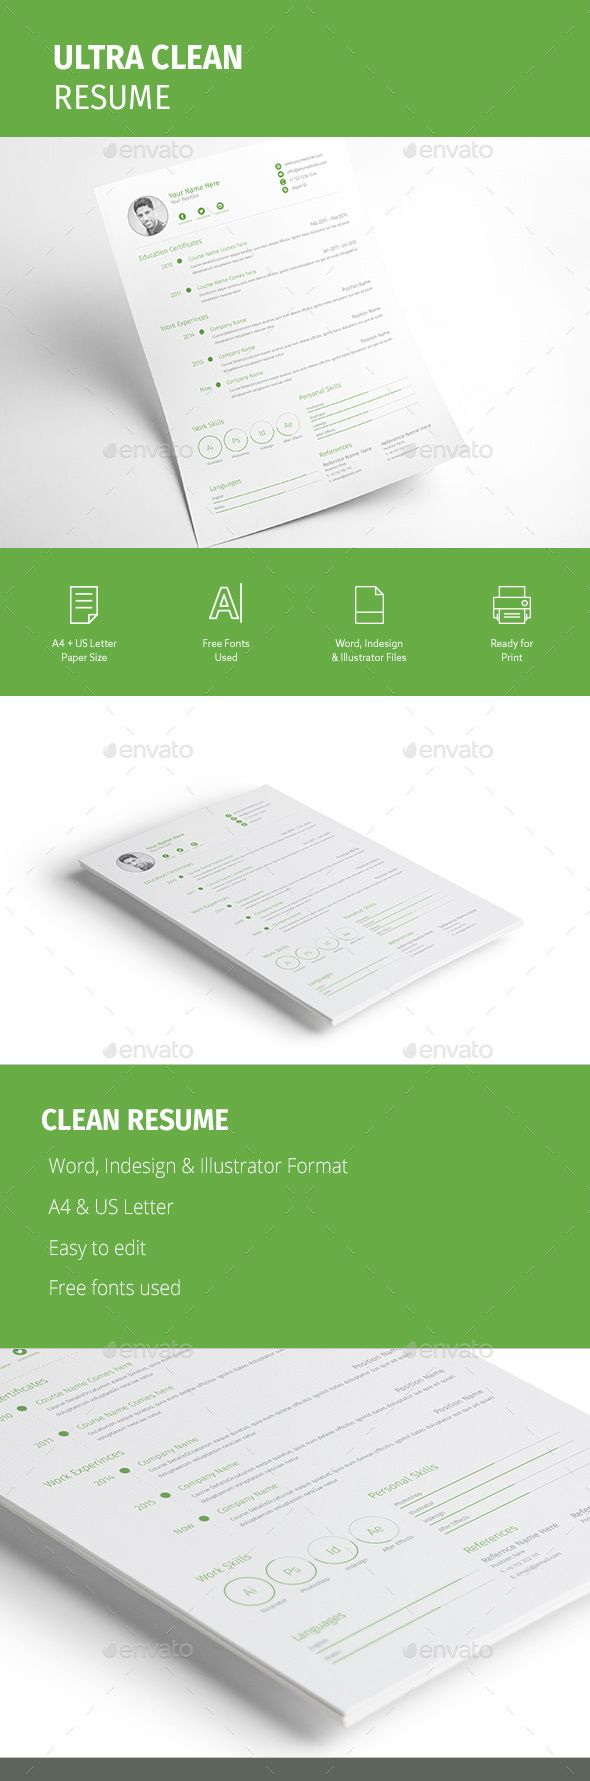 Best Bewerbung Images On   Resume Design Cv Template